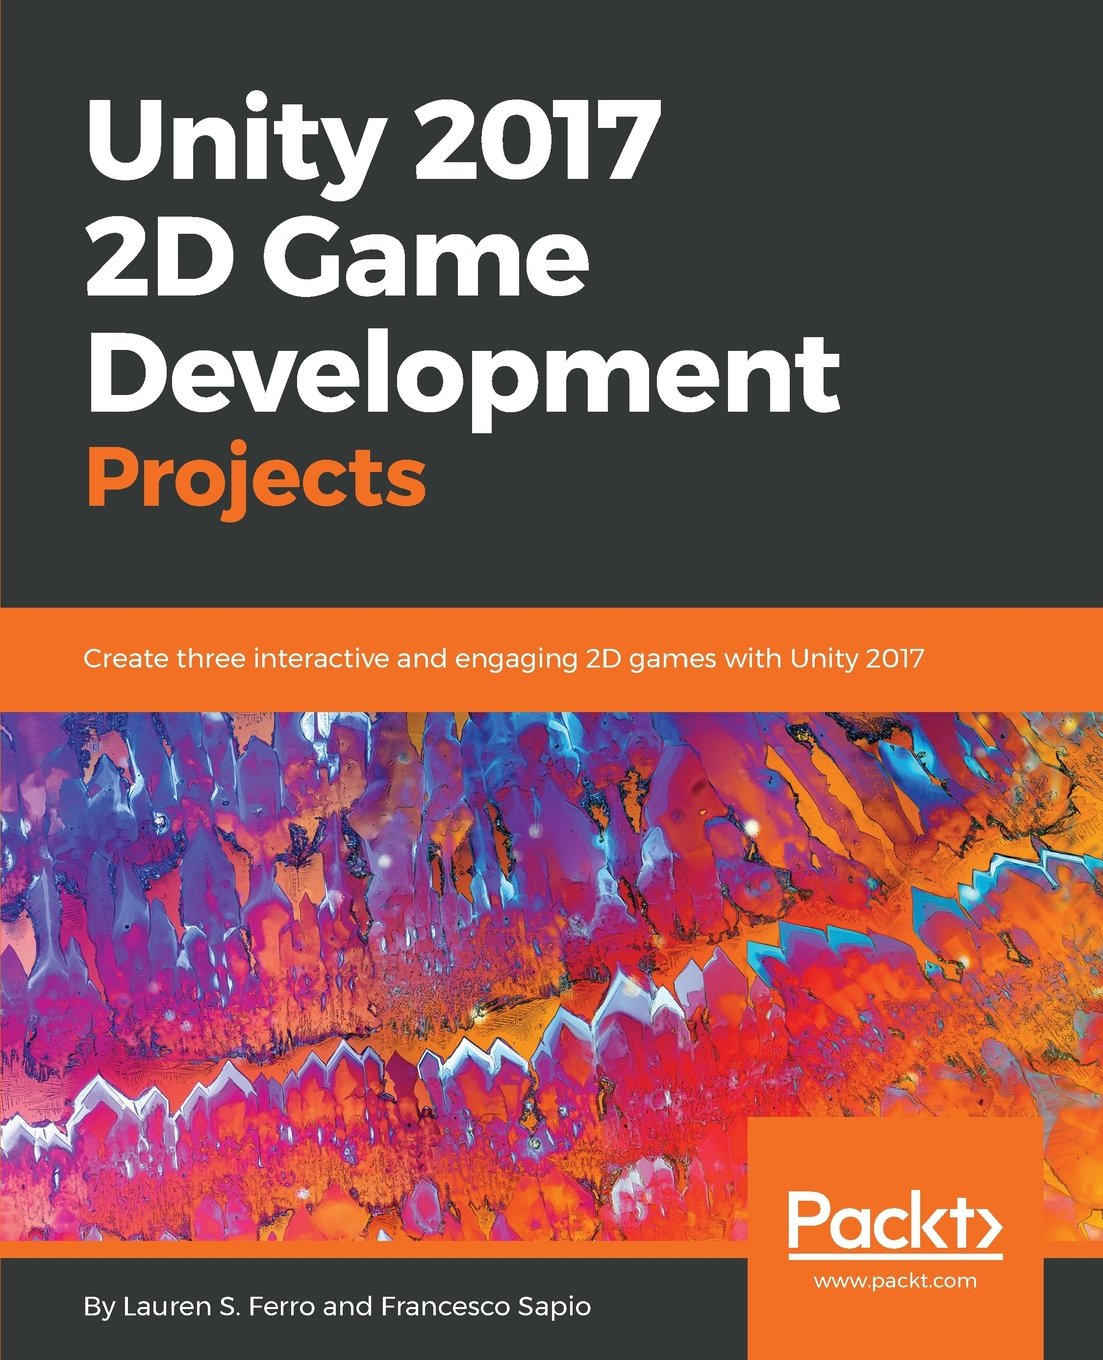 Unity 2017 2D Game Development Projects: Create three